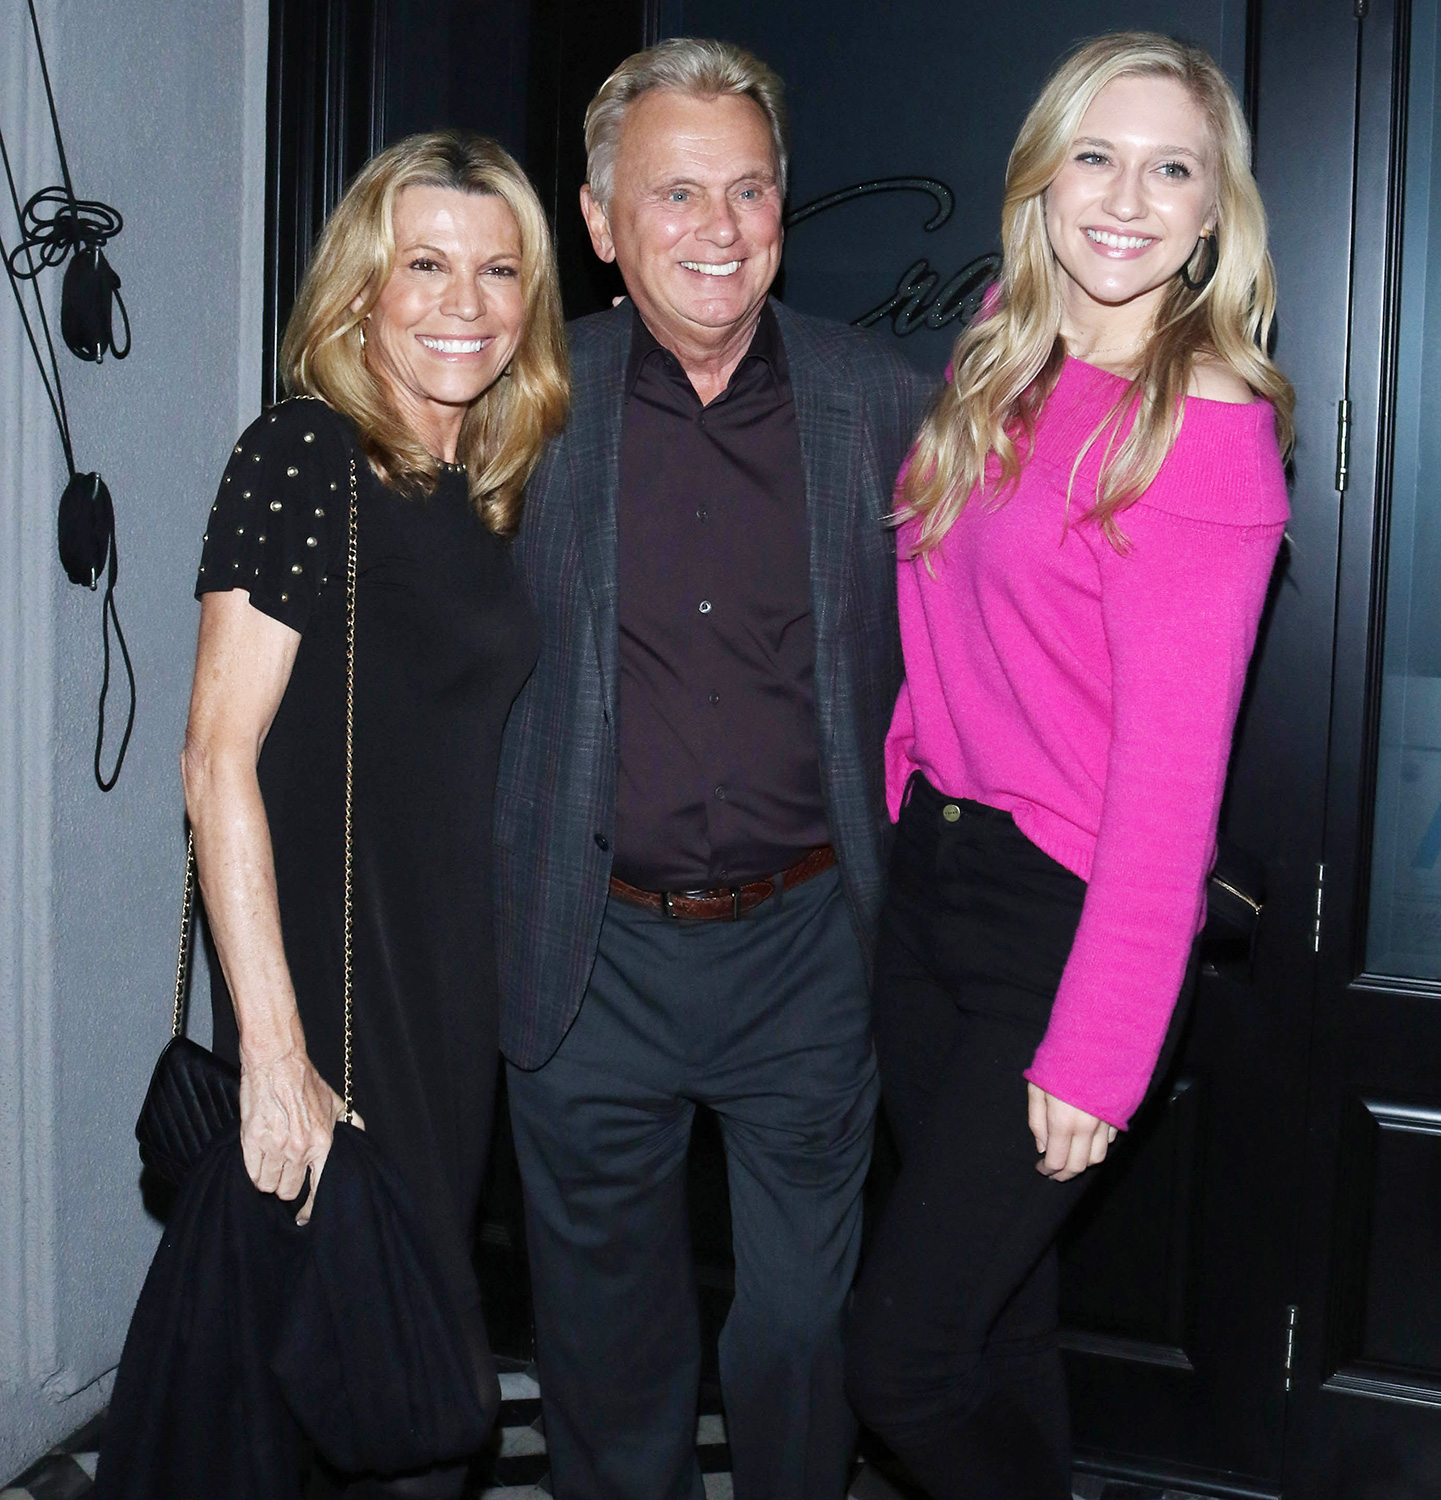 Vanna White, Pat Sajak and Maggie Sajak are seen on January 9, 2020 in Los Angeles, California